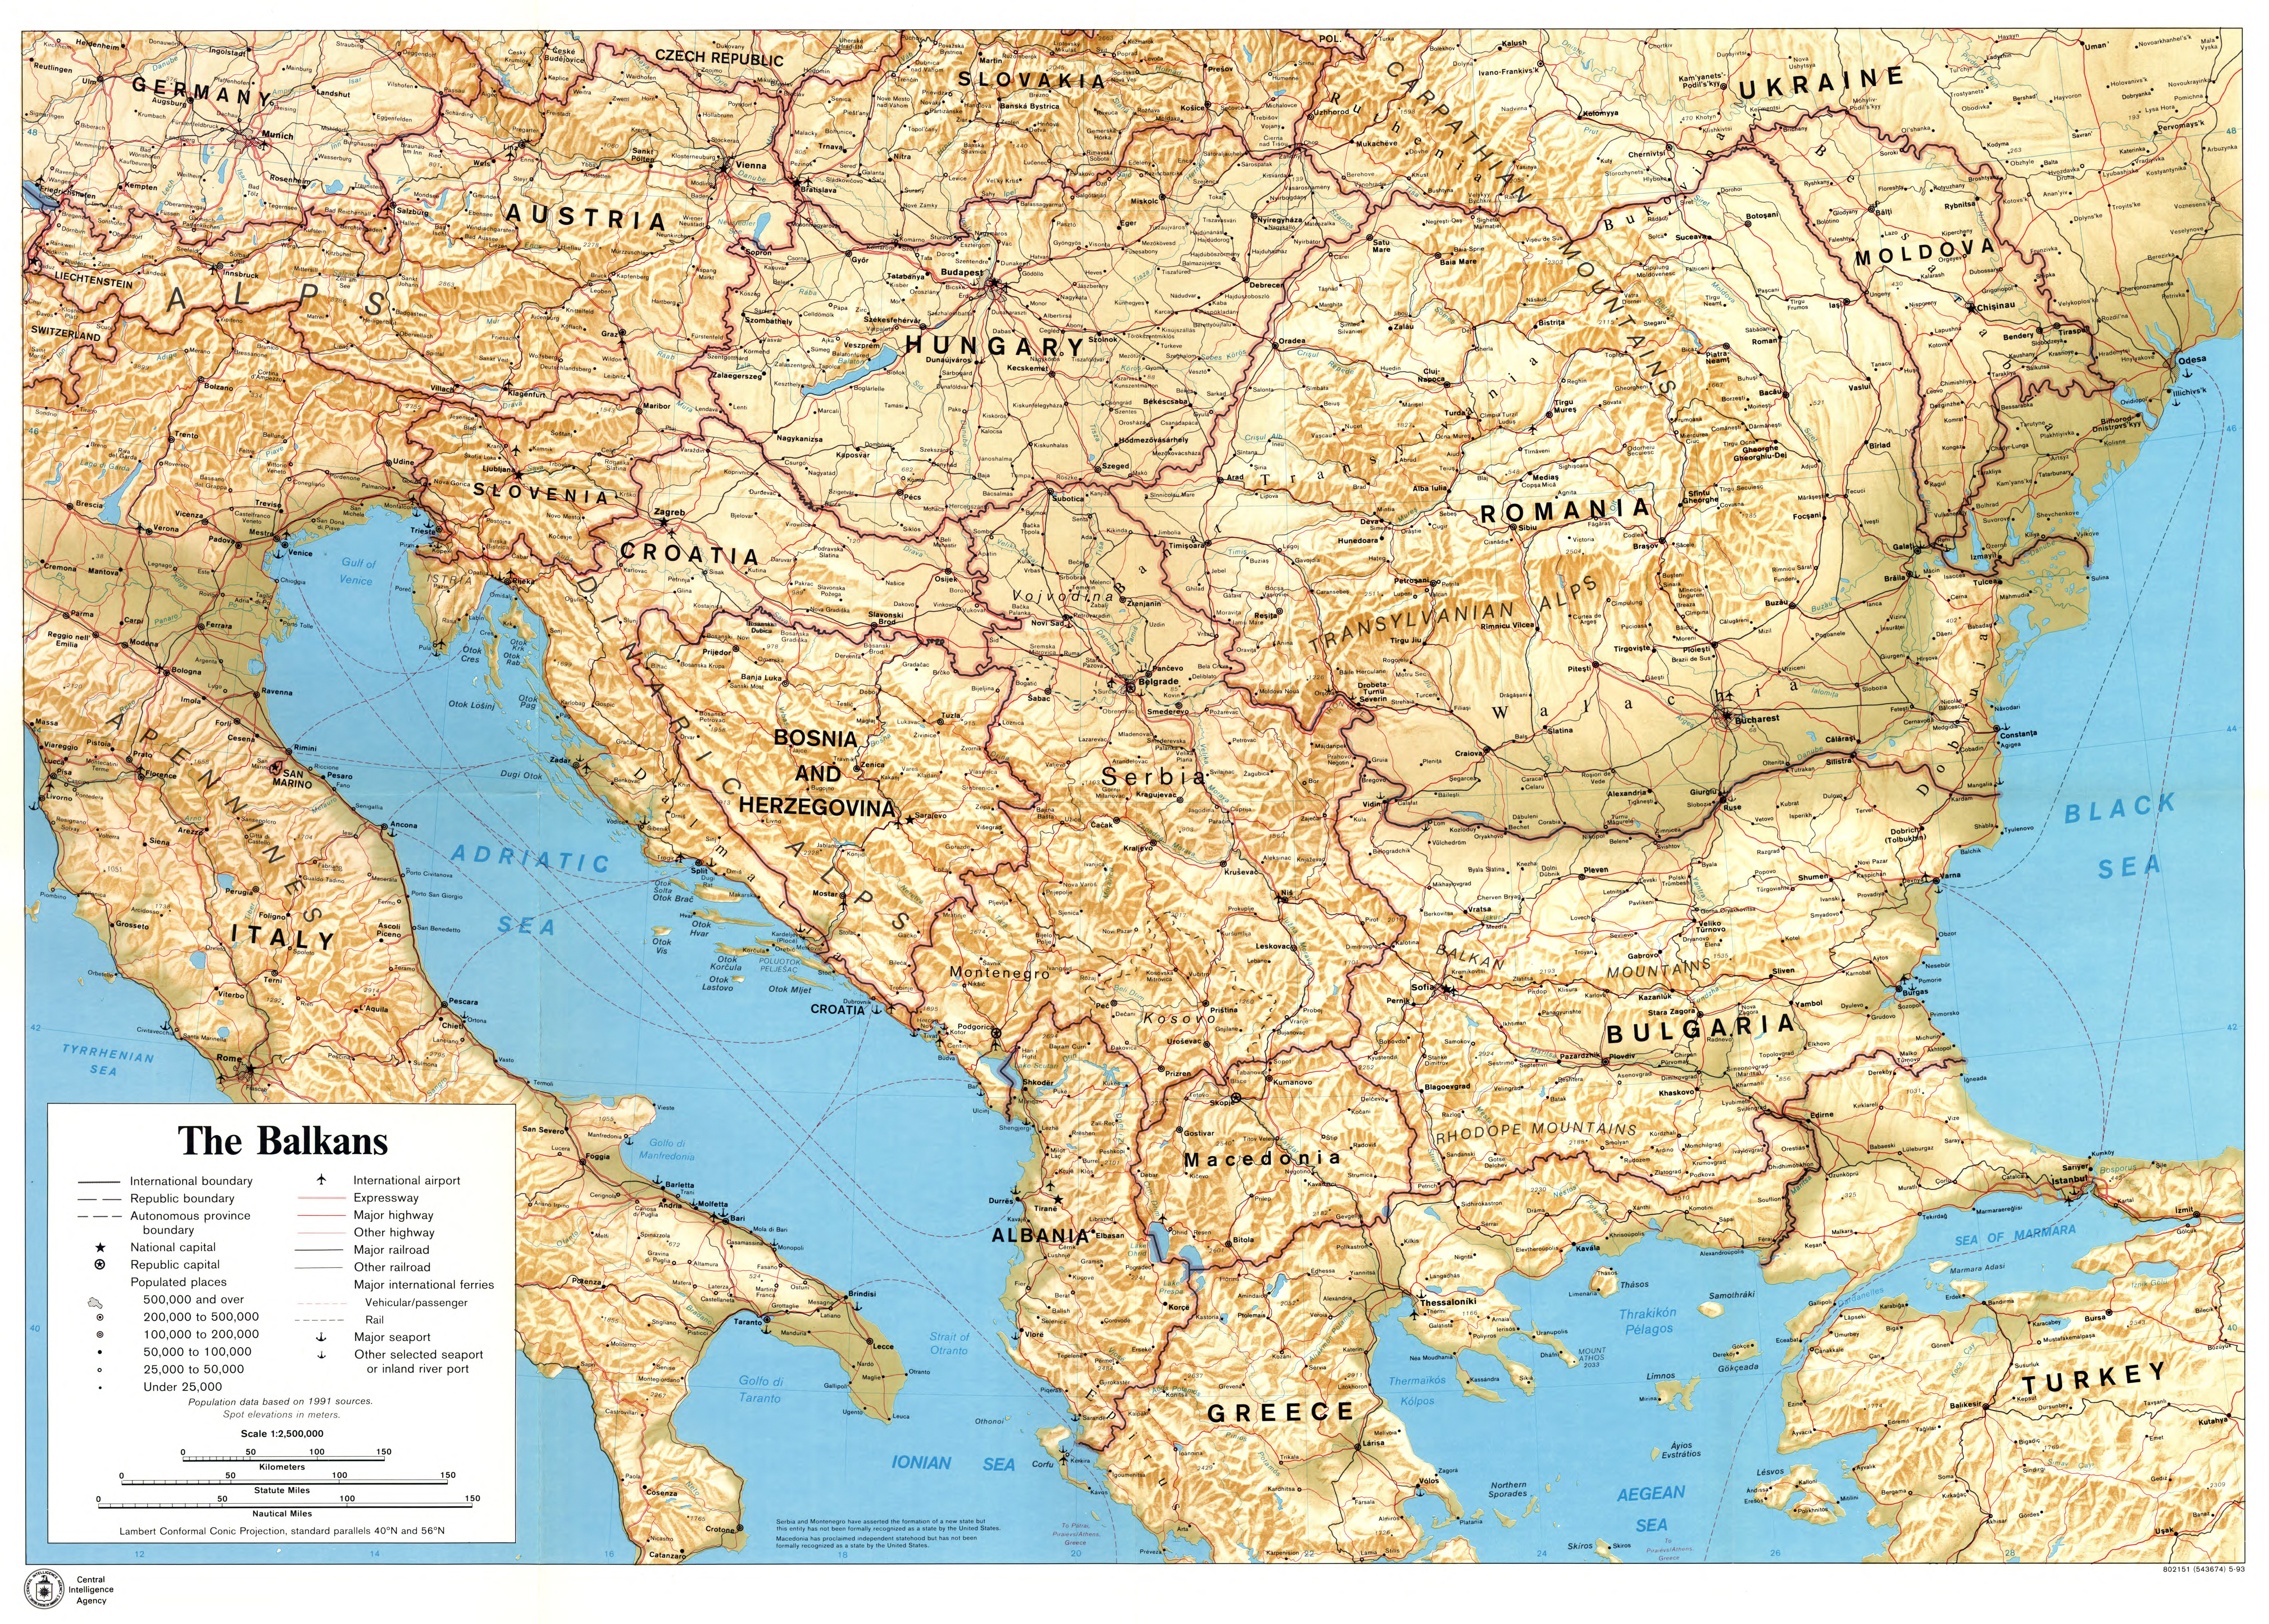 Large scale political map of the Balkans with relief, marks of ... on beautiful women of europe, world atlas of europe, black and white world map europe, world map europe 1500, world map japan, world globe map europe, geography of europe, country of europe, shapes of europe, world war 2 allies and axis countries map, world us map, world map europe and america, world map eastern europe, canada of europe, world map with countries, world map western asia, peninsulas of europe, rivers of europe, asia of europe, germany of europe,